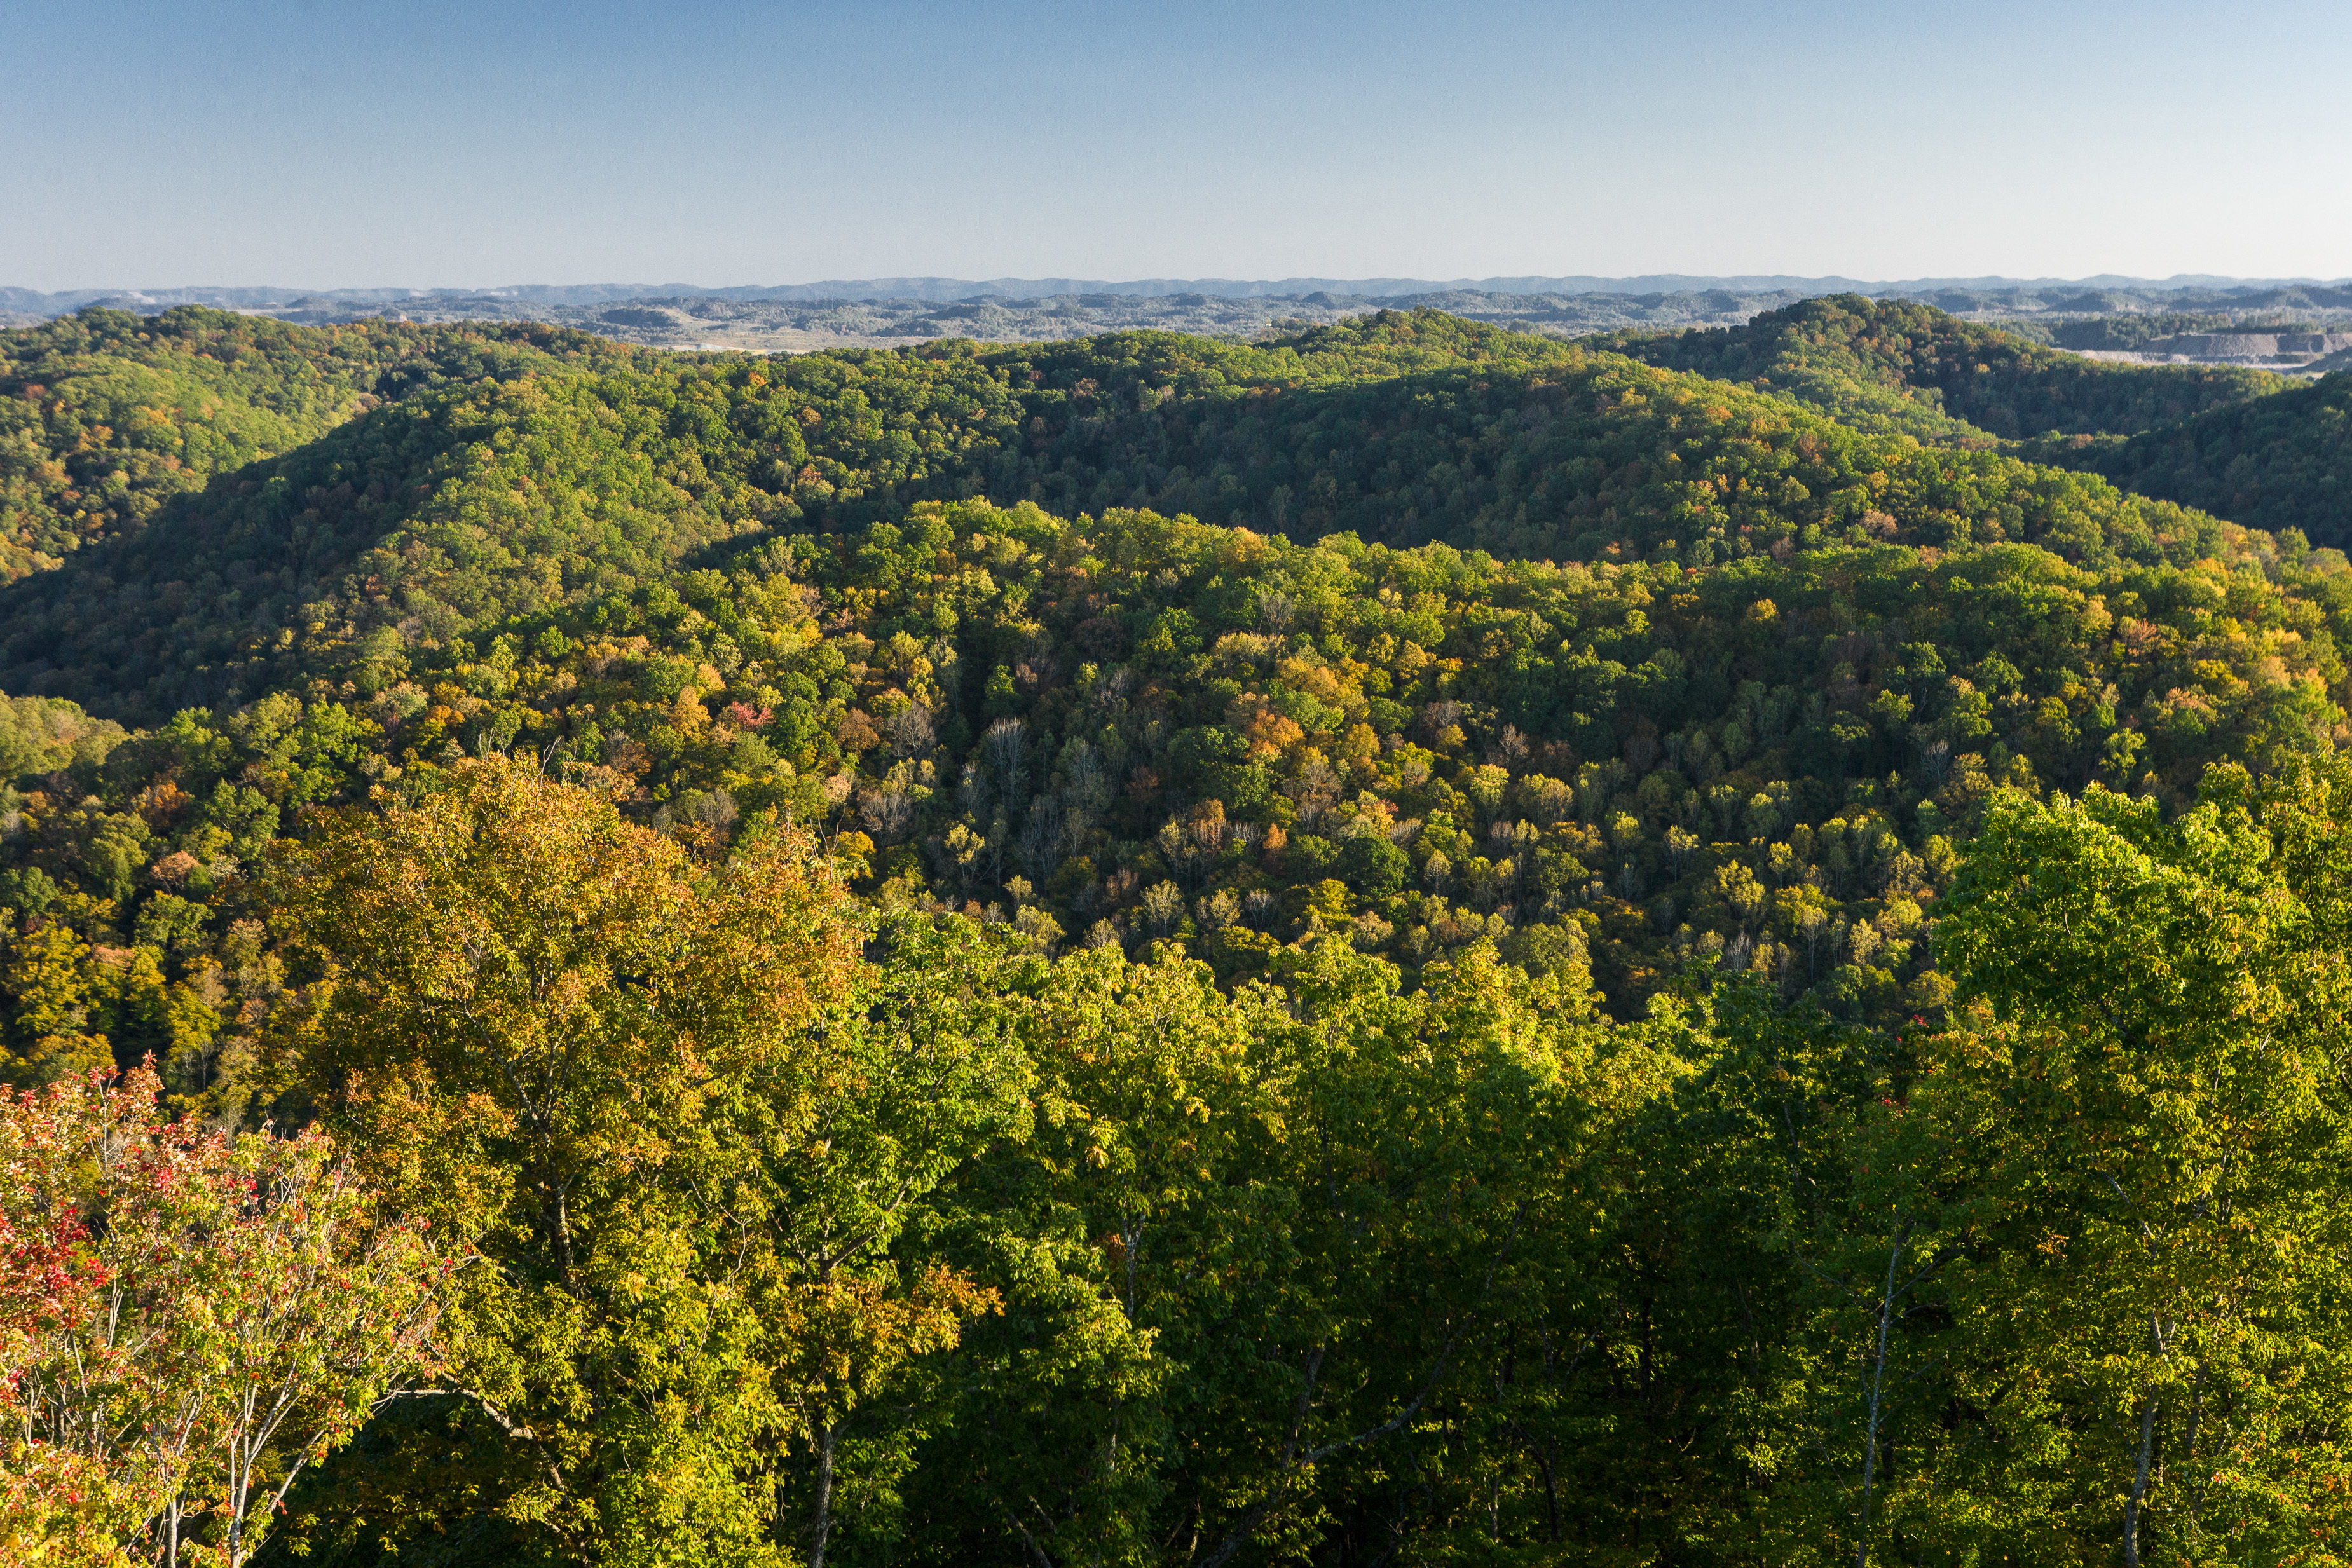 National Forest Products Week to highlight state's woodlands